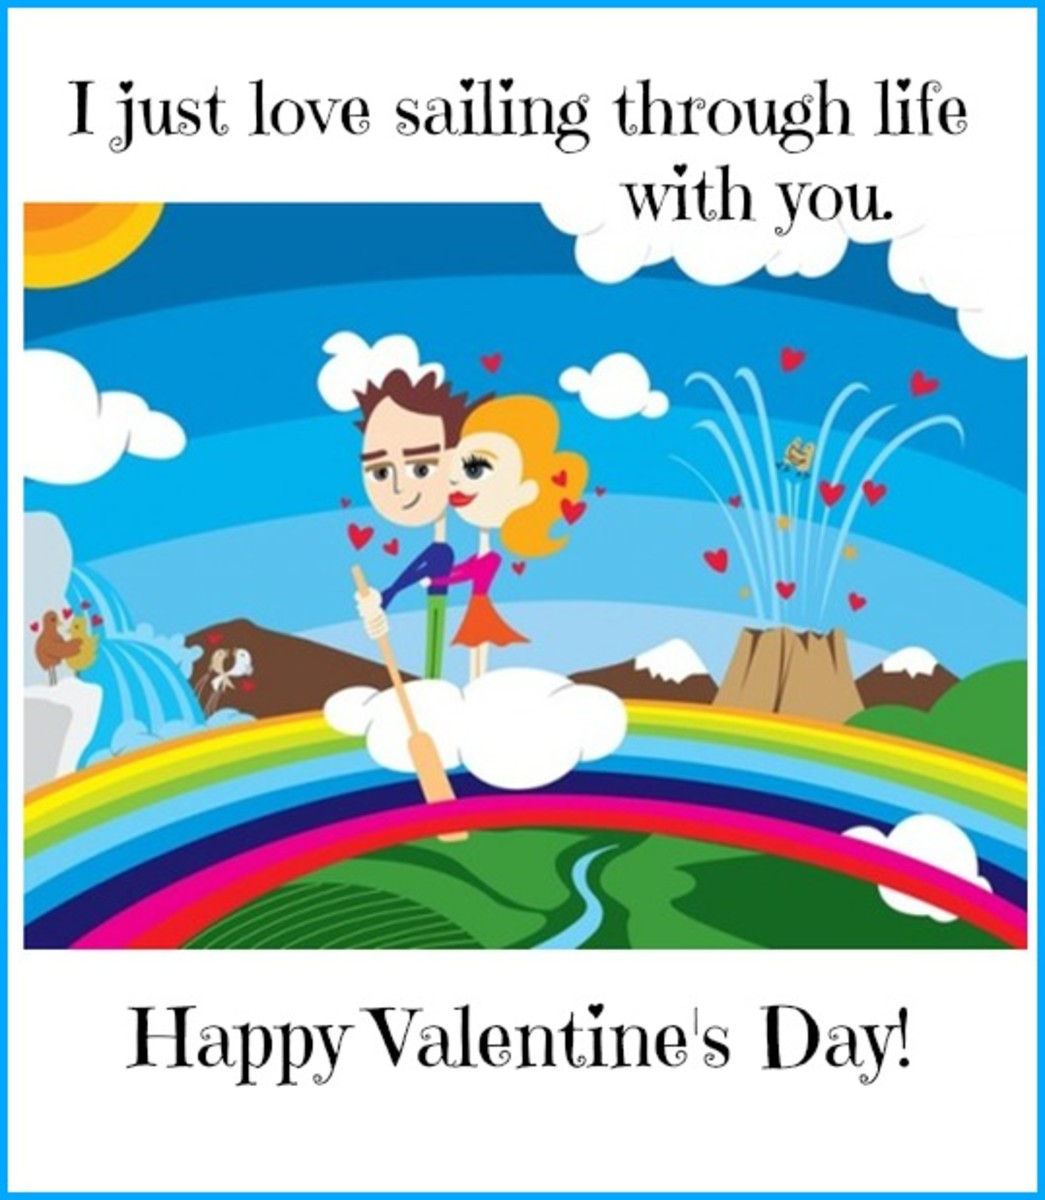 Valentine's Day Card for Spouse